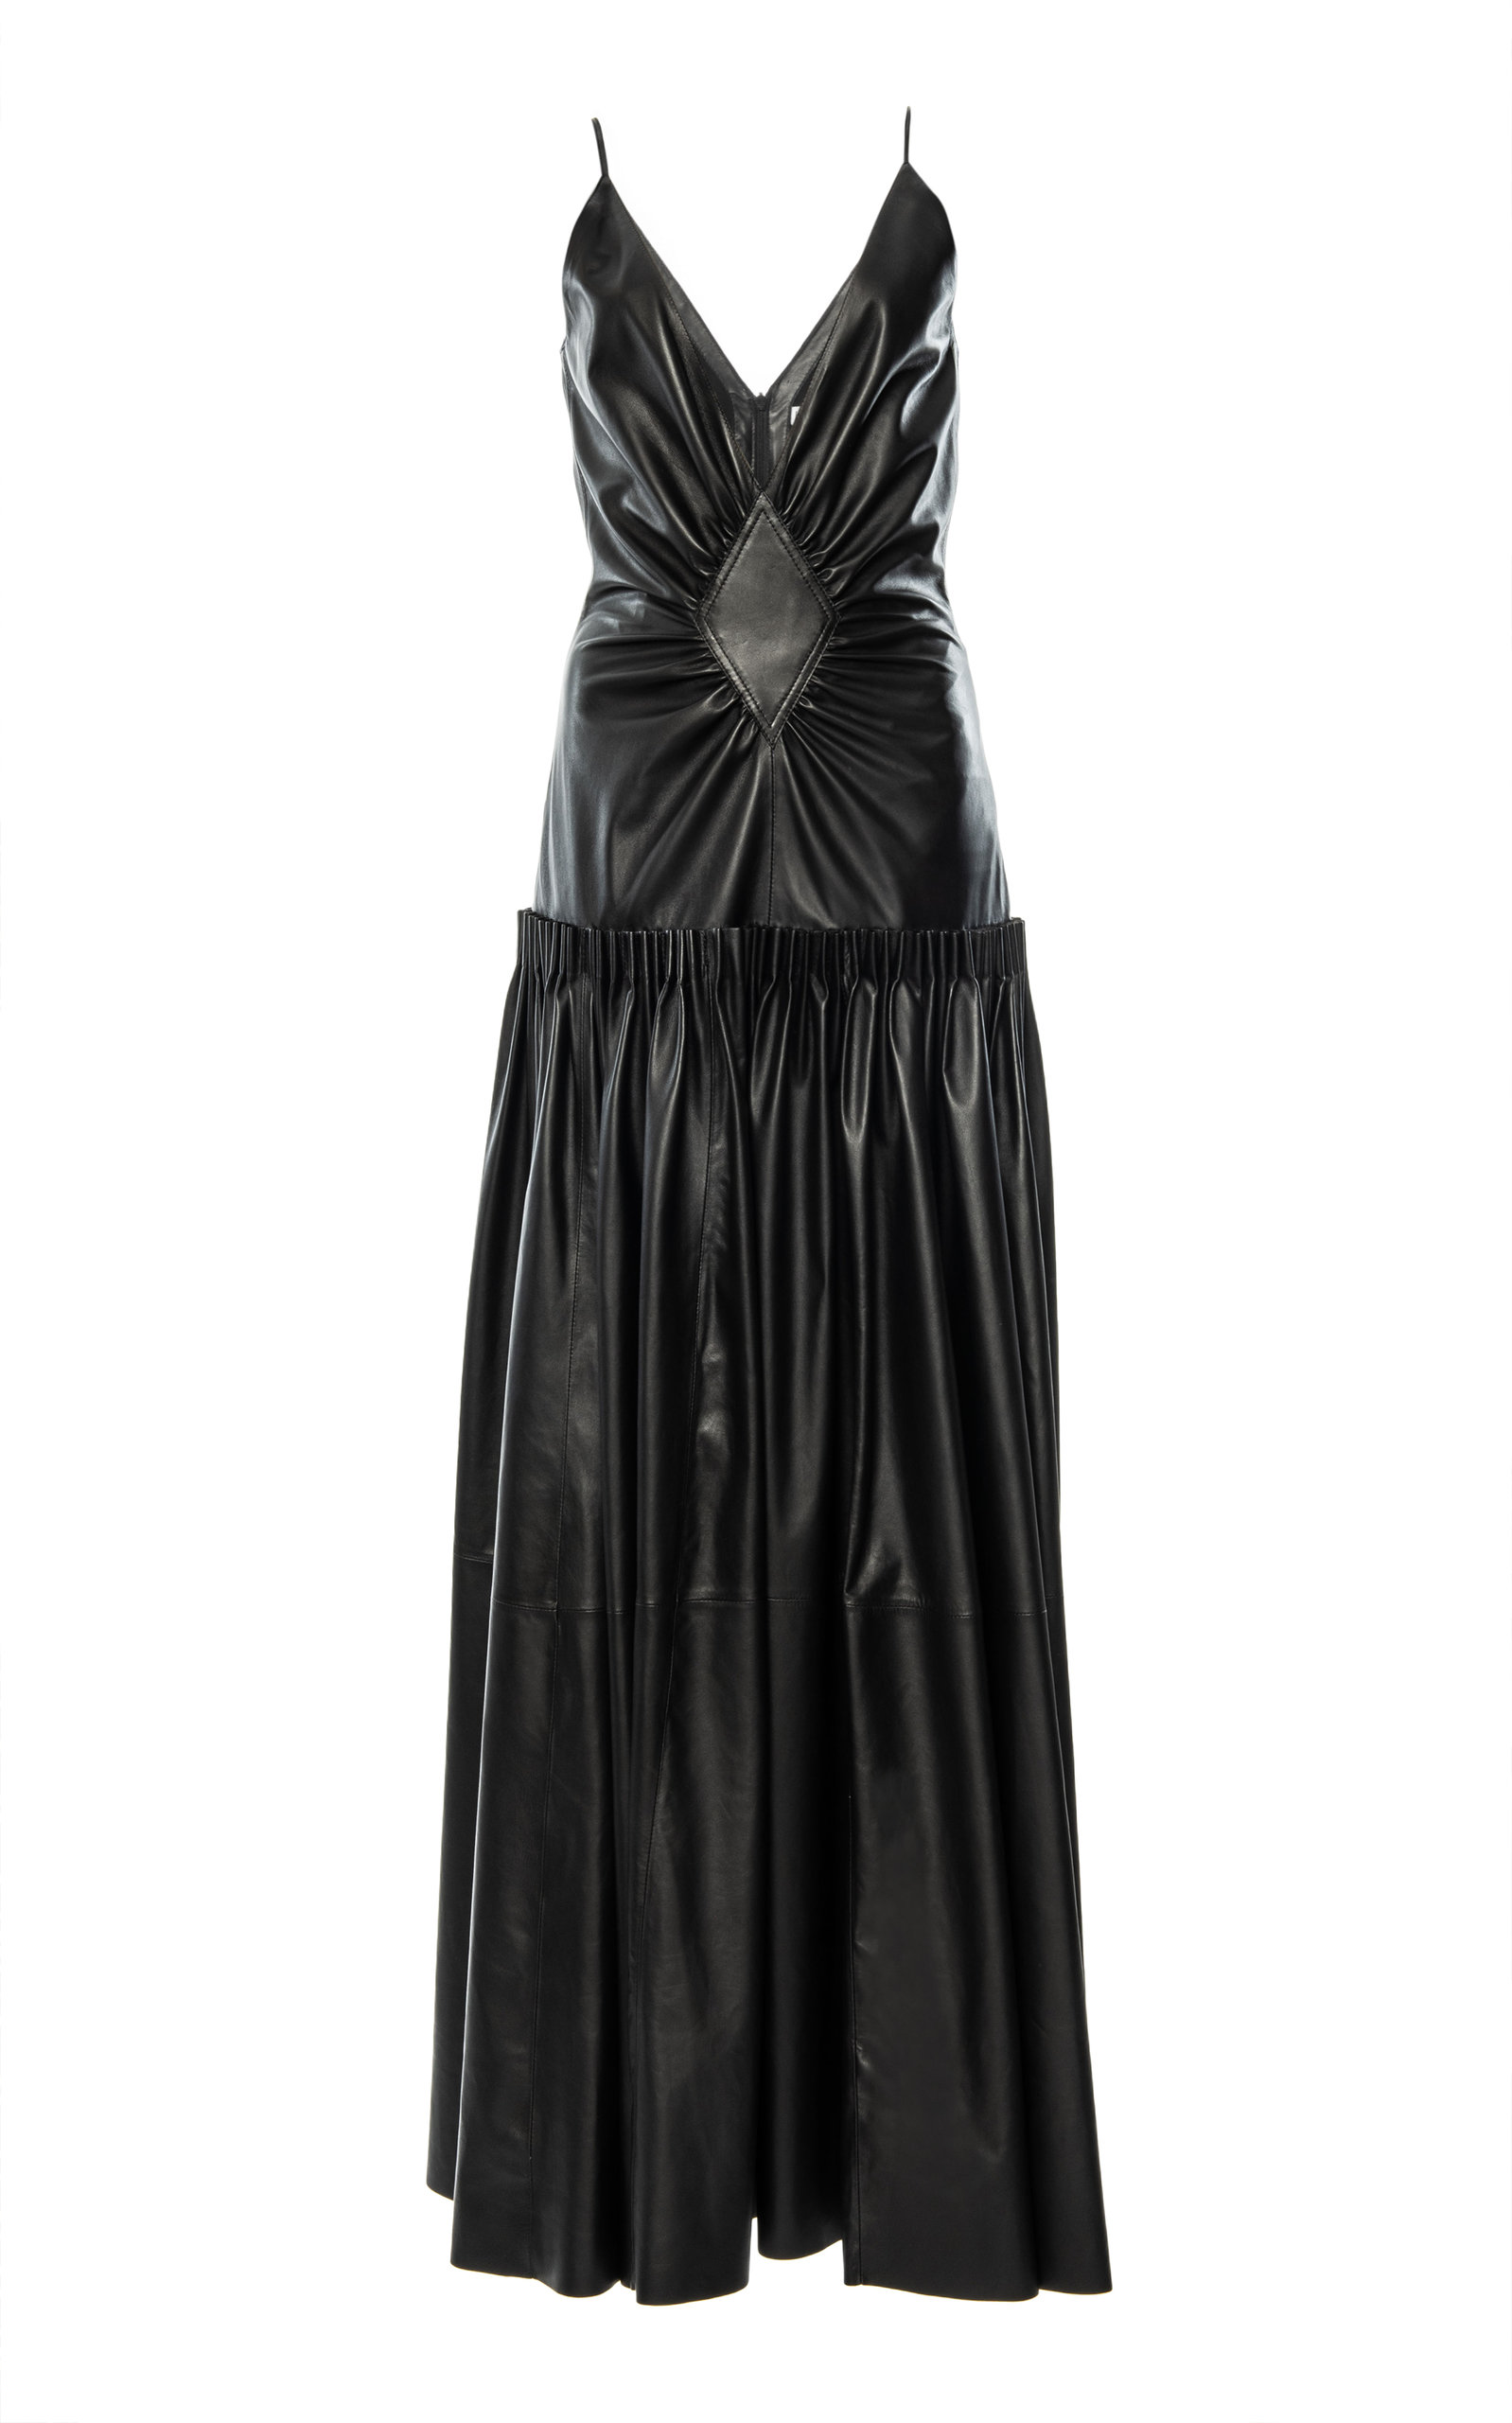 Buy Loewe Gathered Leather-Blend Maxi Dress online, shop Loewe at the best price